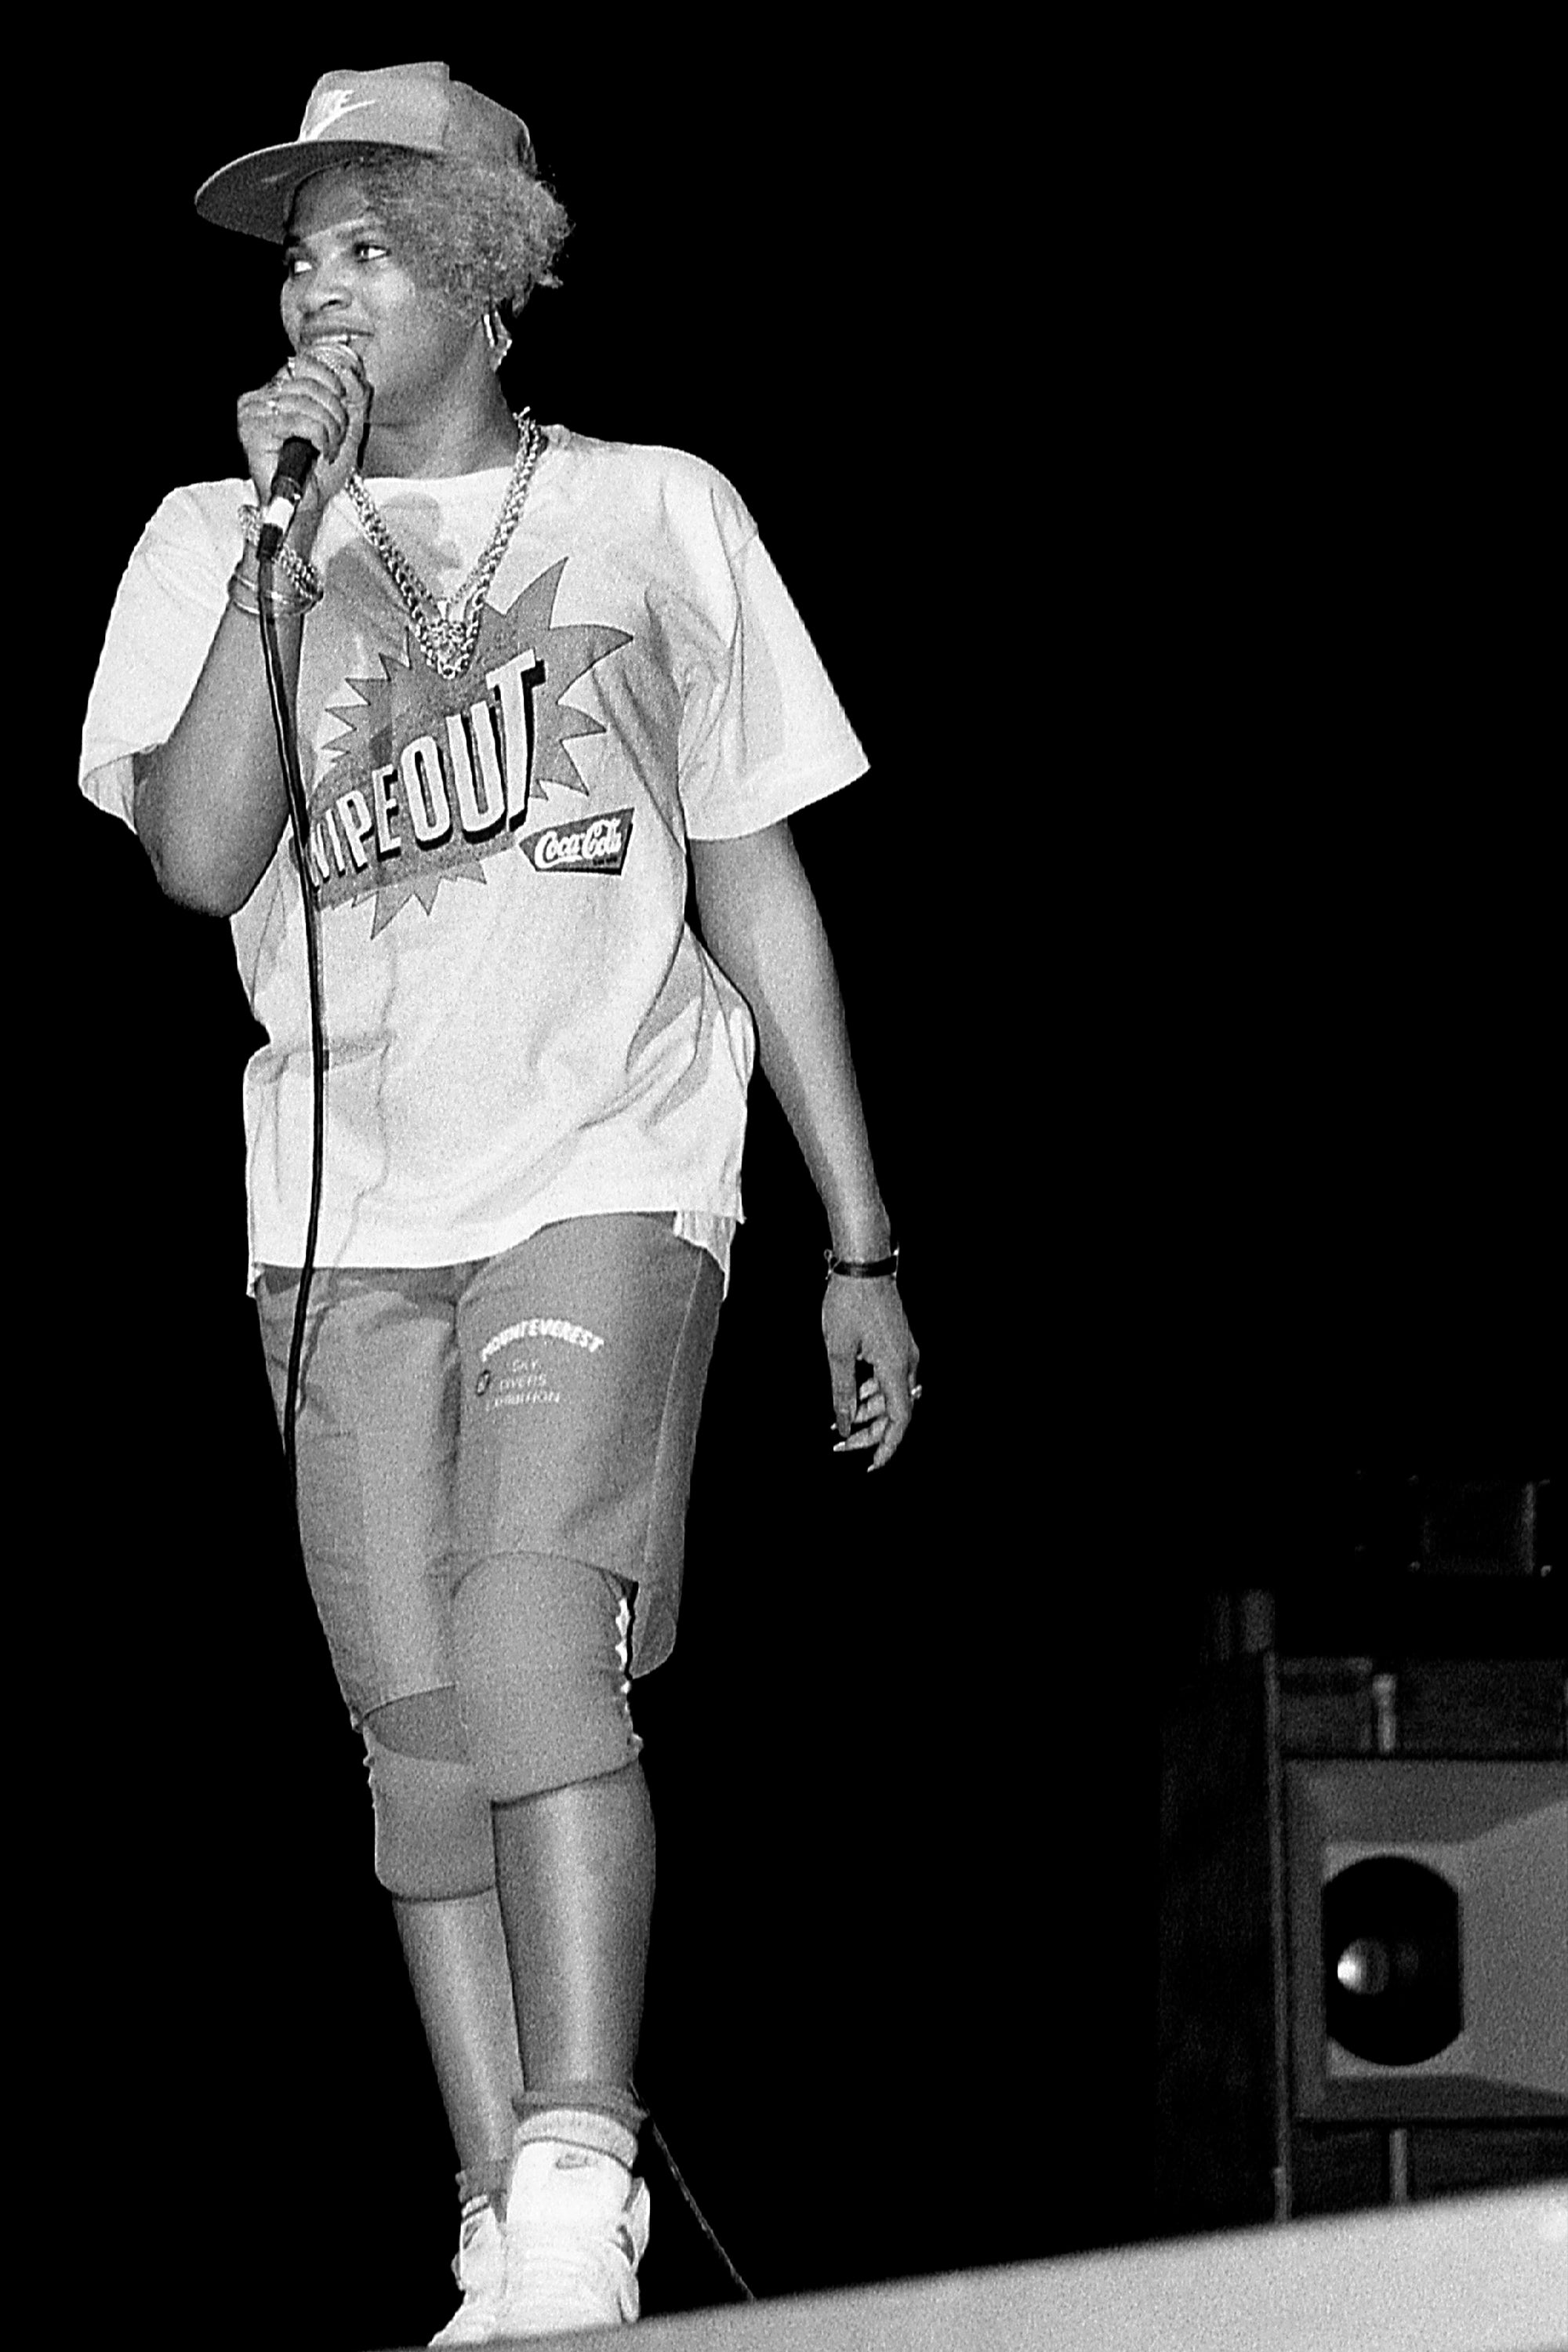 Salt from Salt-N-Pepa perform at the Holiday Star Theatre in Merrillville, Indiana 1987